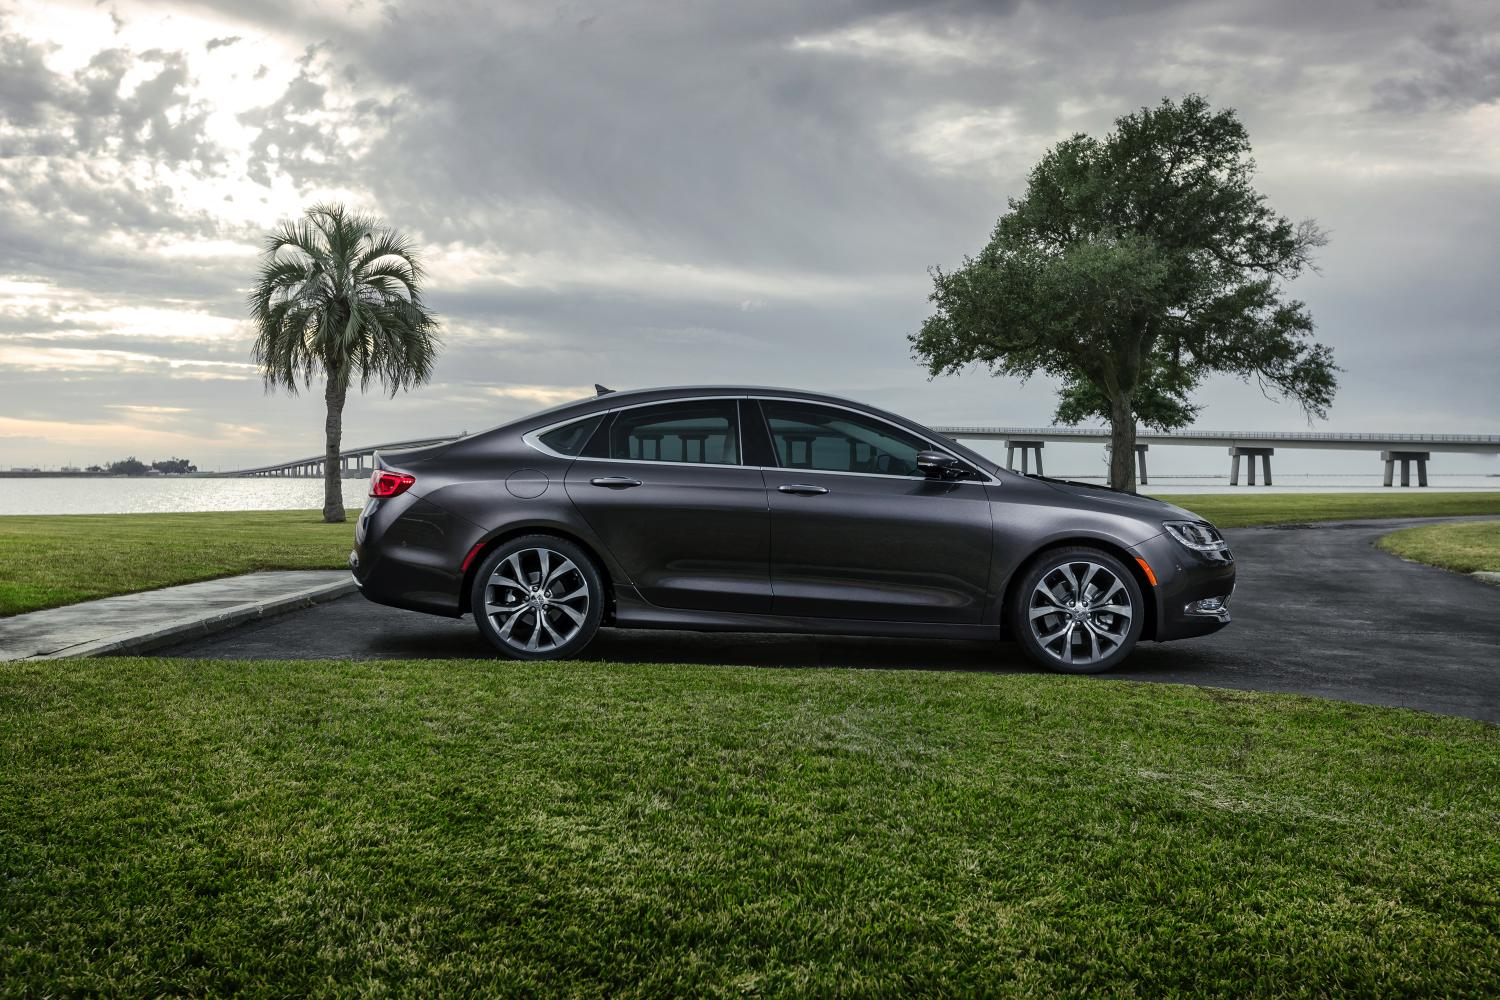 2015 Chrysler 200 Goes Through 3 500 Quality Control Tests